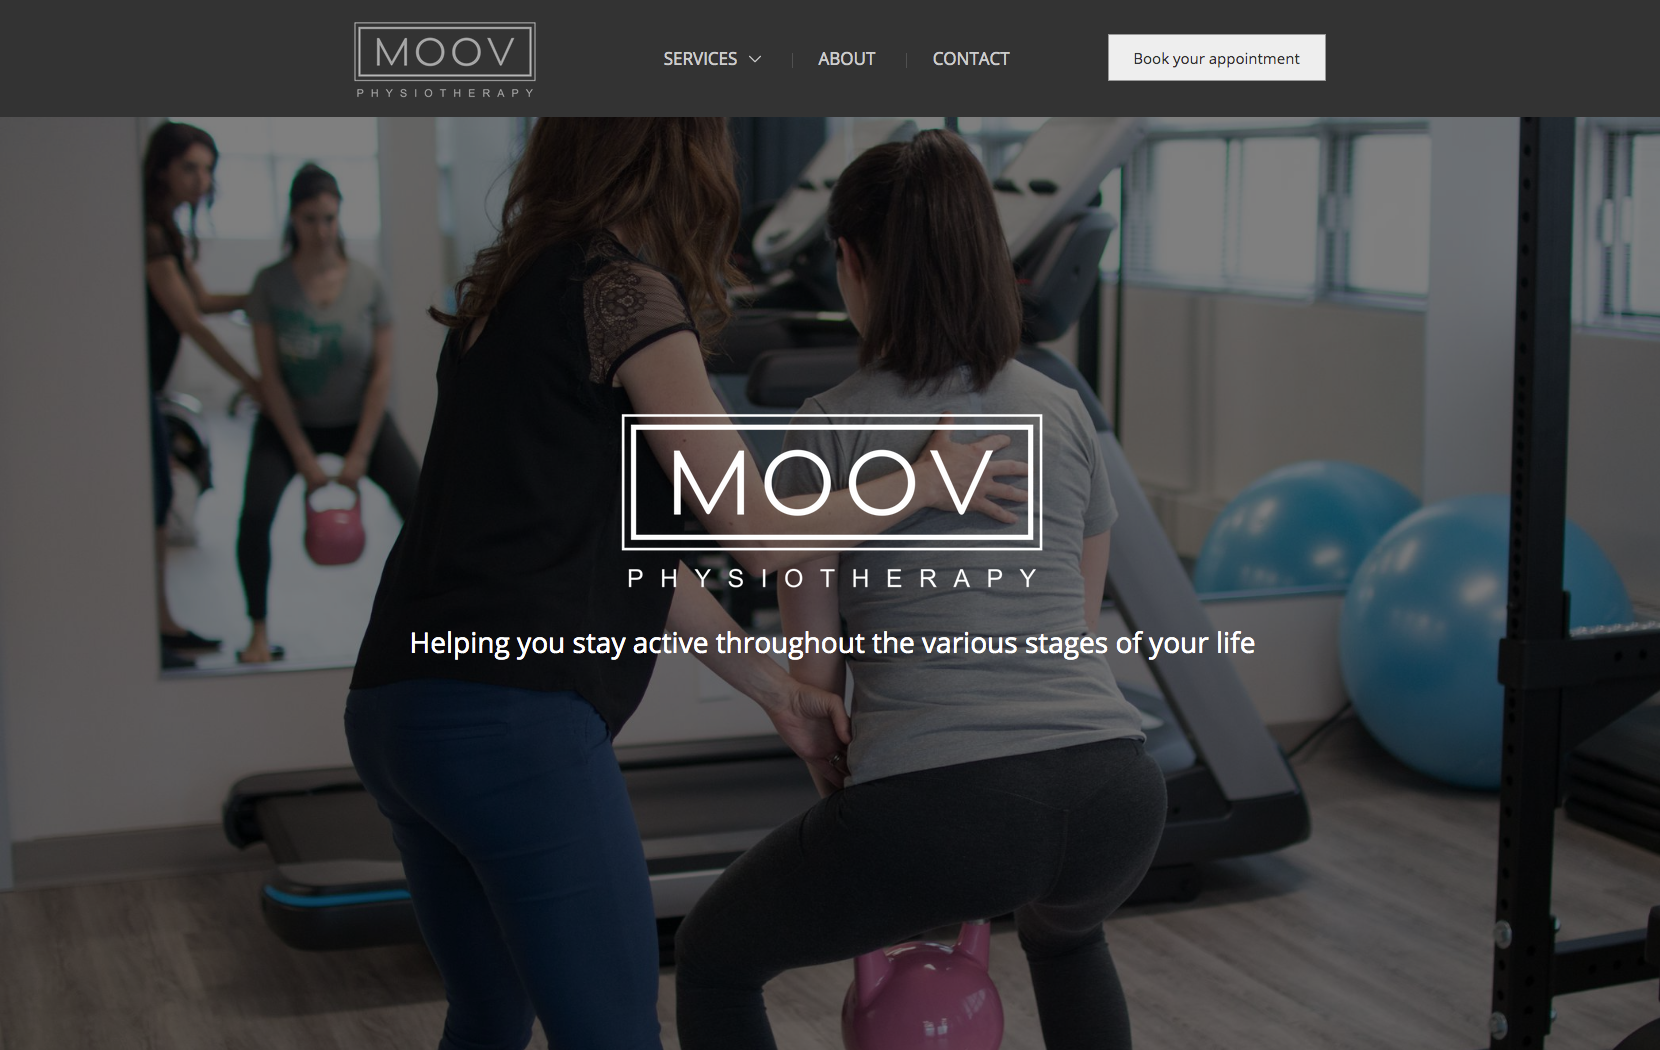 MOOV Physiotherapy